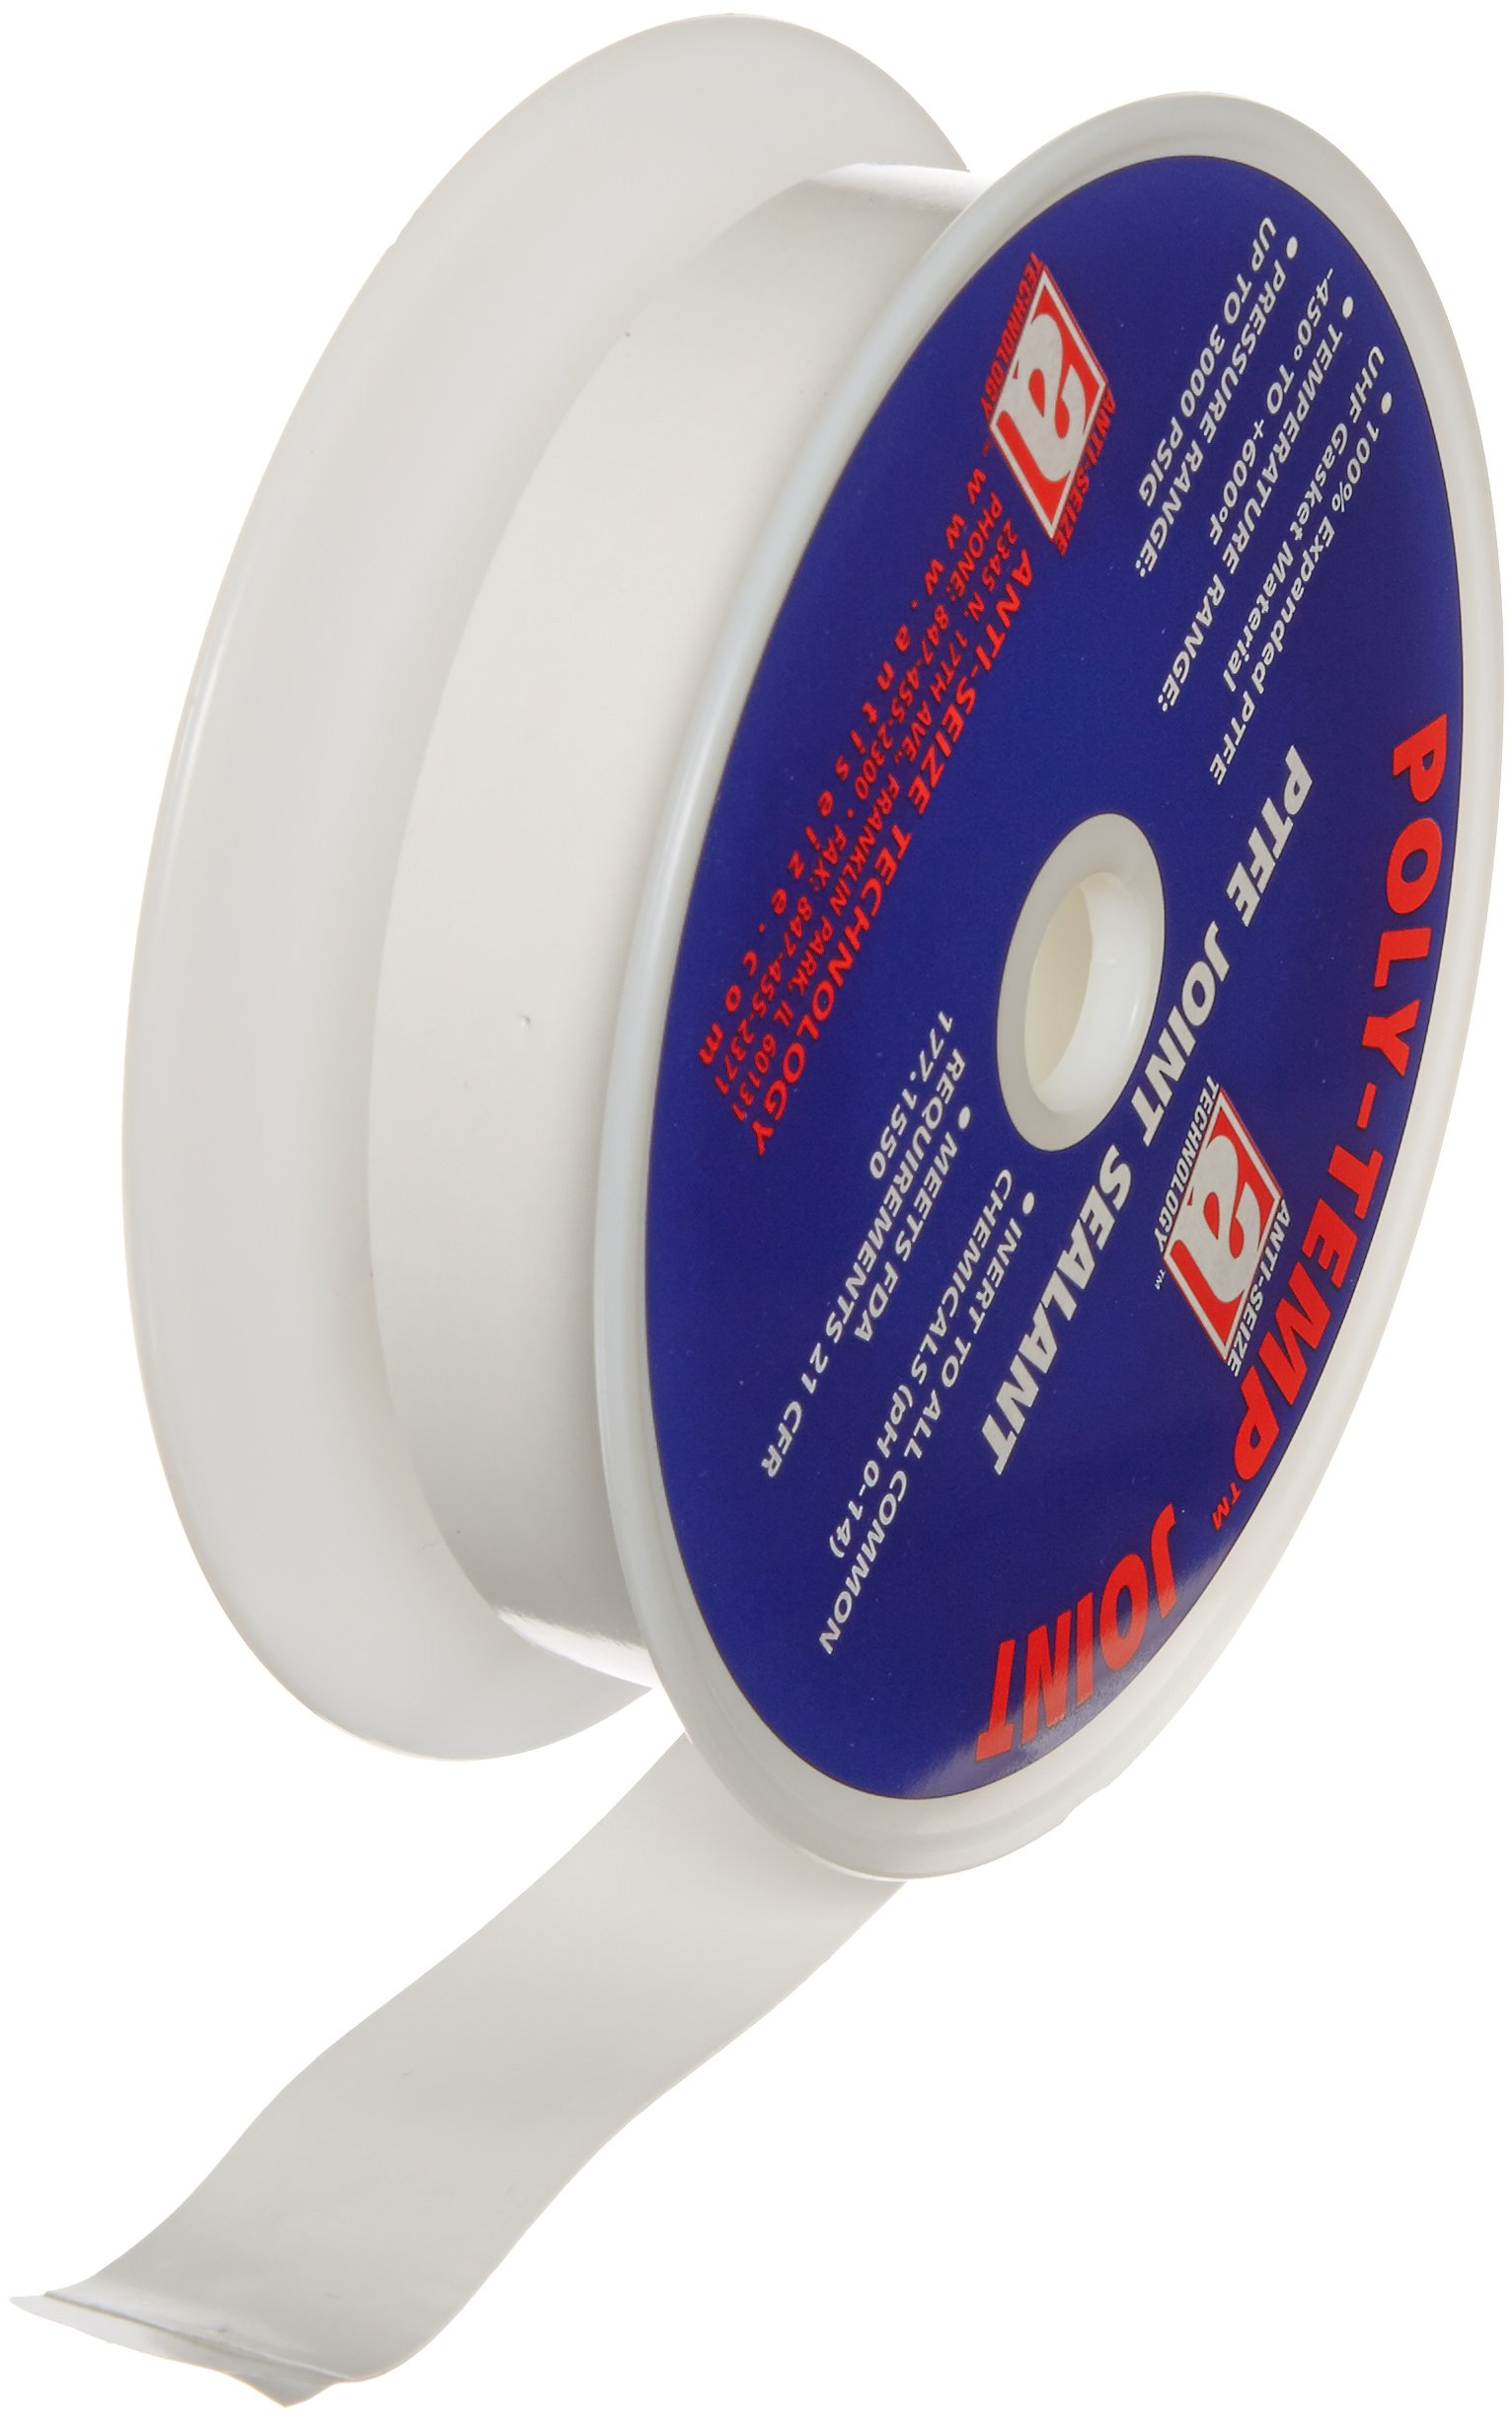 Poly-Temp 38101 White 100% PTFE Gasket Tape, 10 Mil Thickness, 1'' x 50' by Anti-Seize Technology